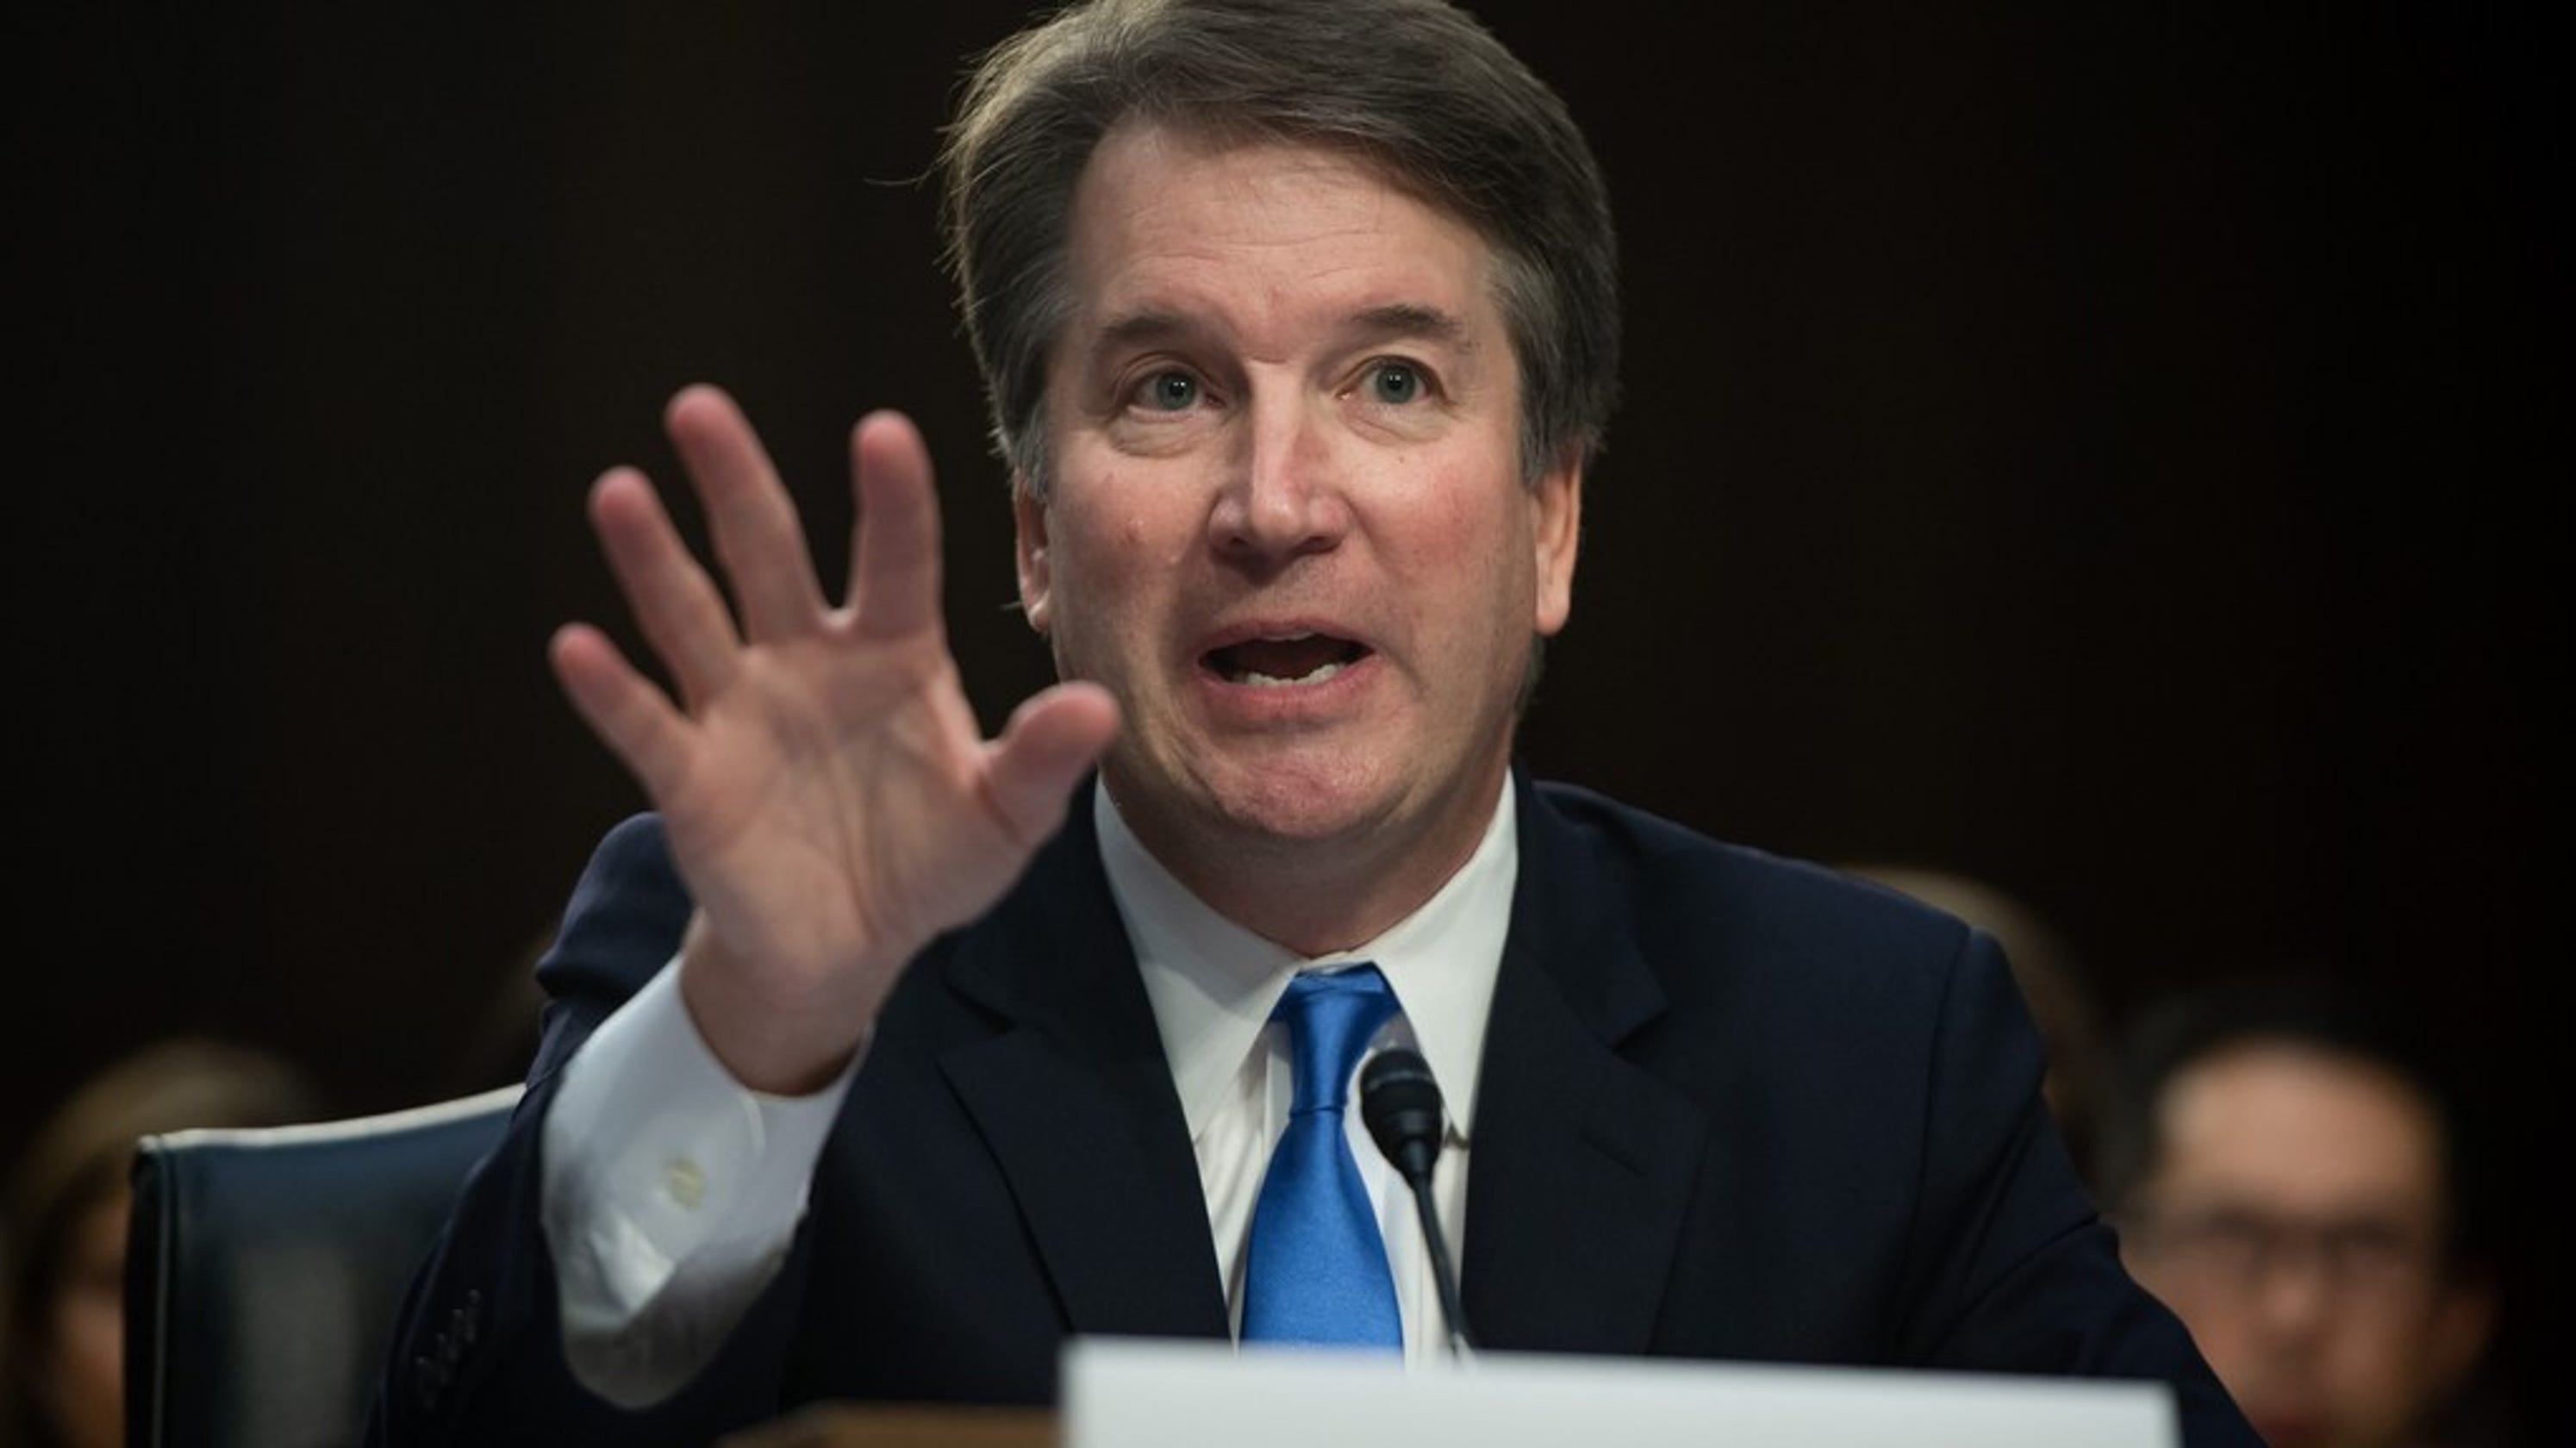 I Hope Democrats Get It Together Before >> War On Brett Kavanaugh Could Cost Democrats In The Midterm